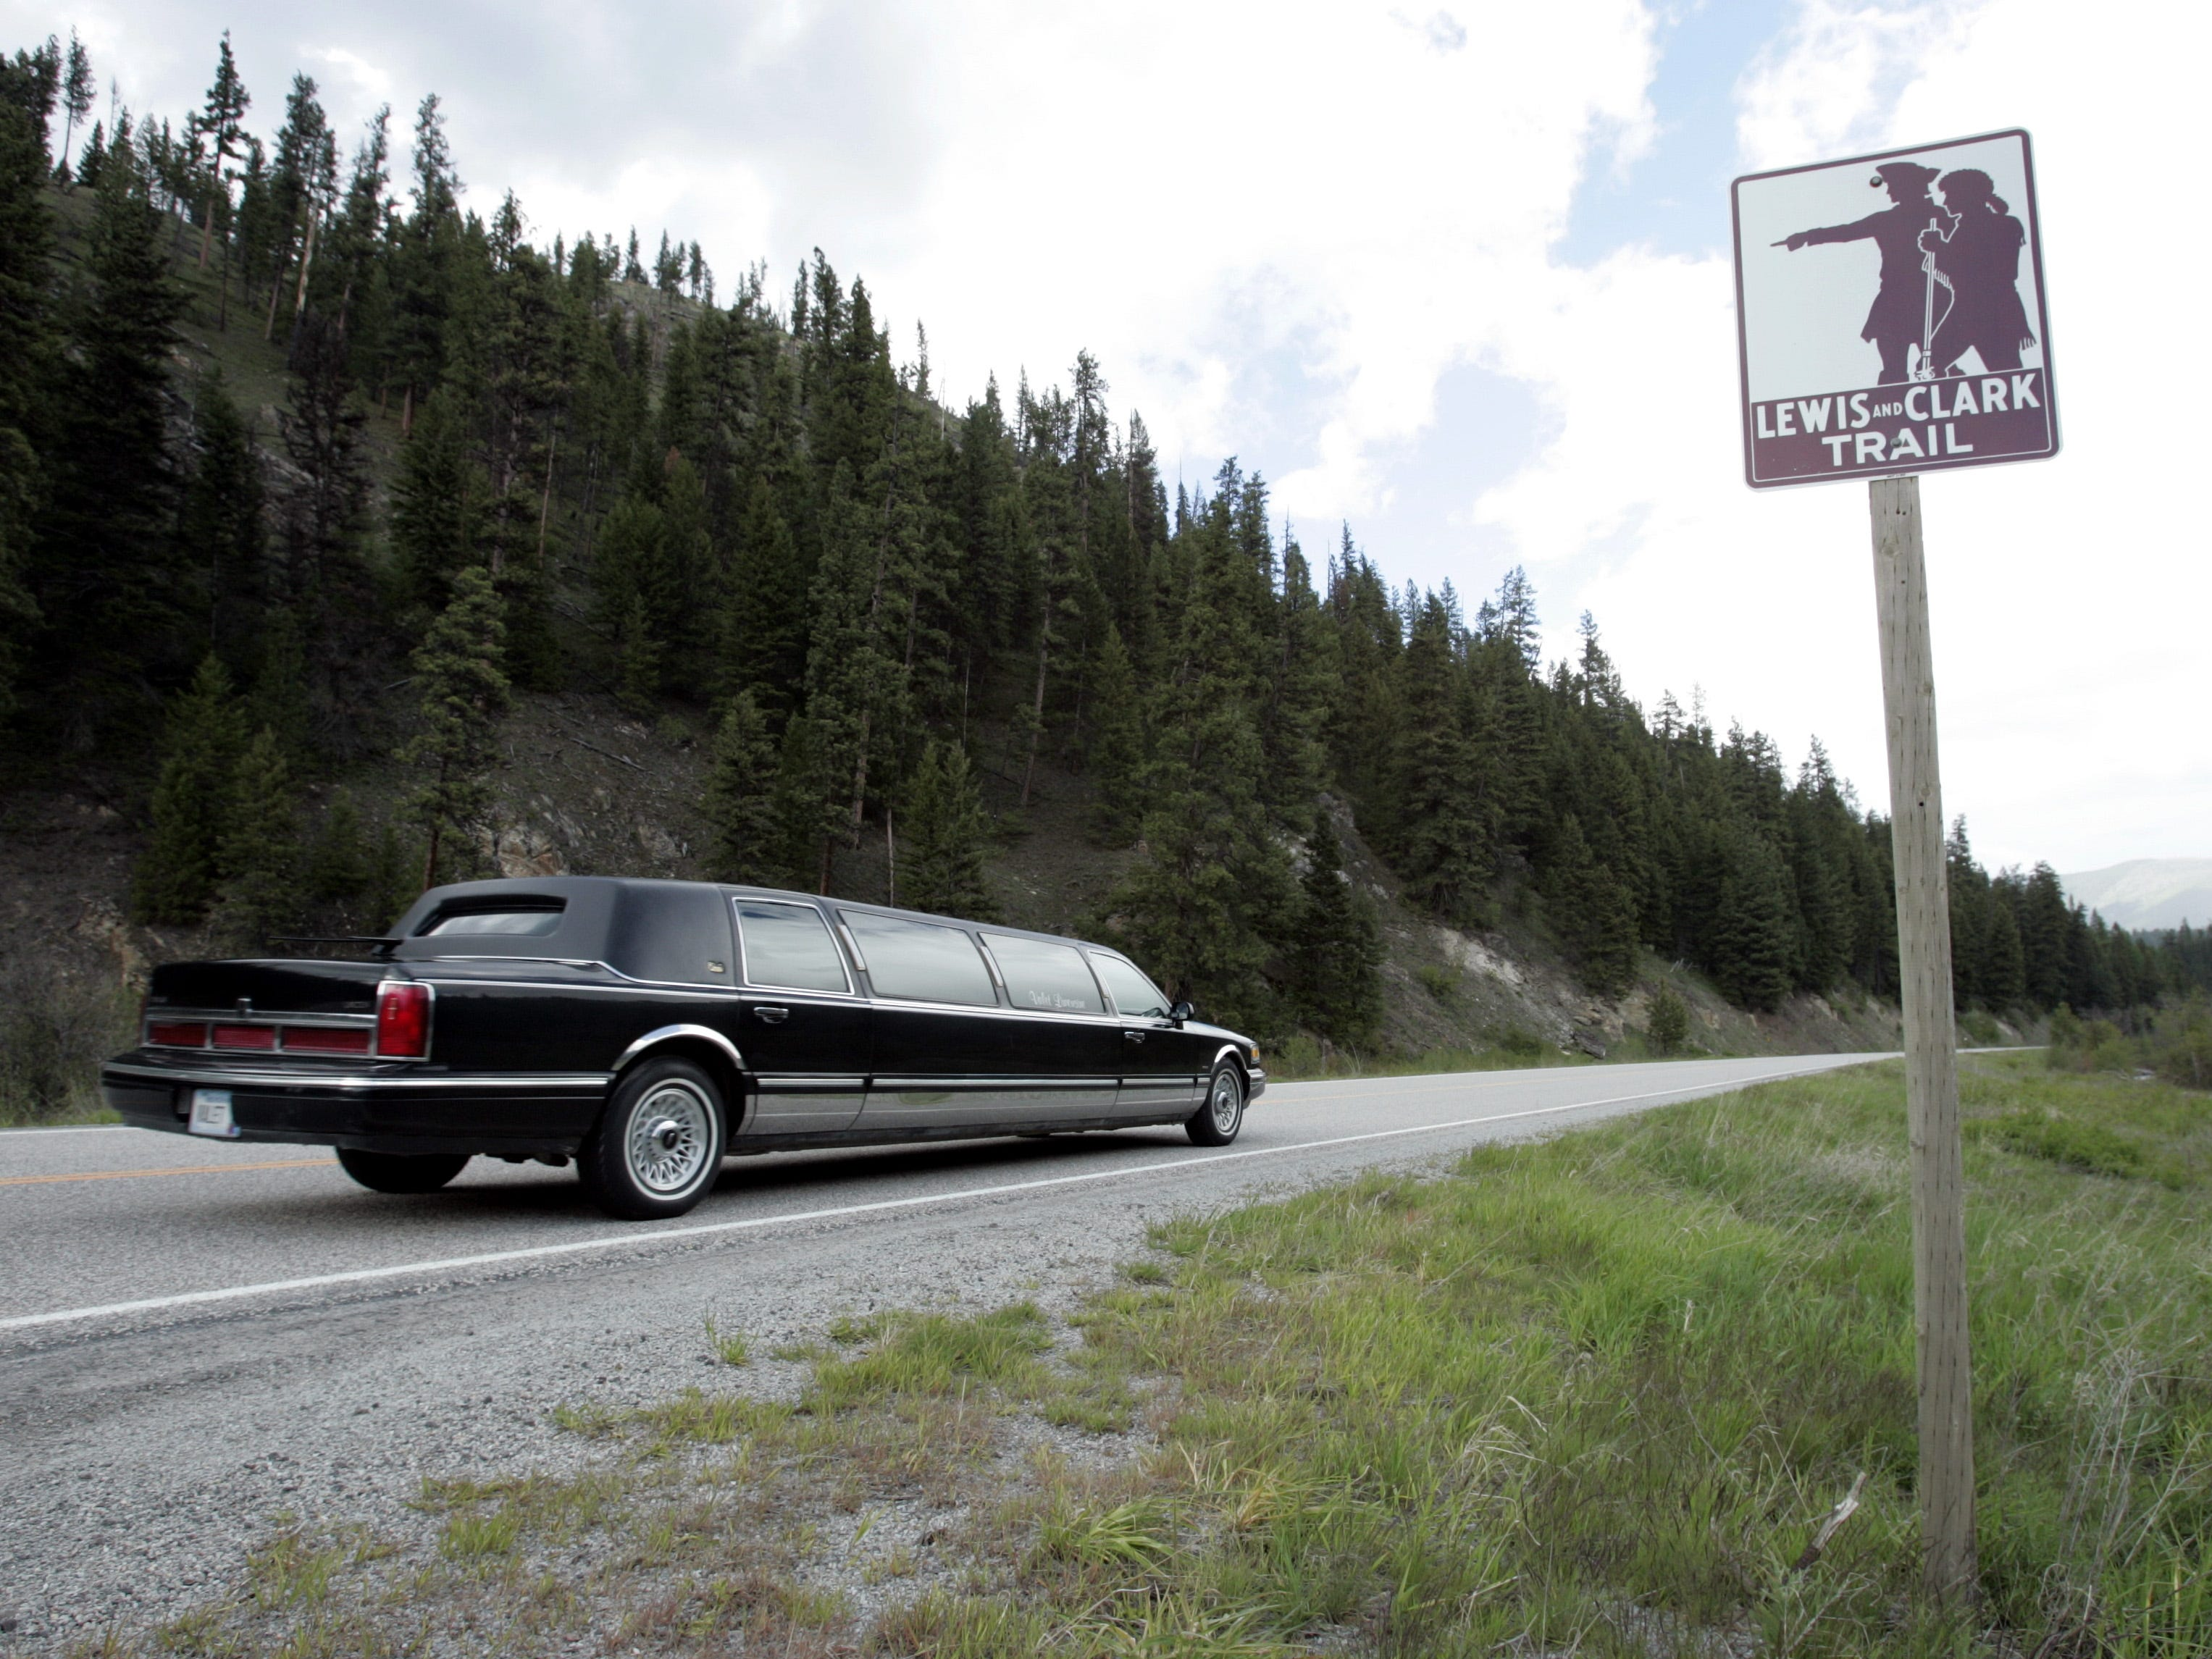 This limo carried passes a Lewis and Clark marker along route 12  near Lolo Pass, Montana, May, 17, 2004.